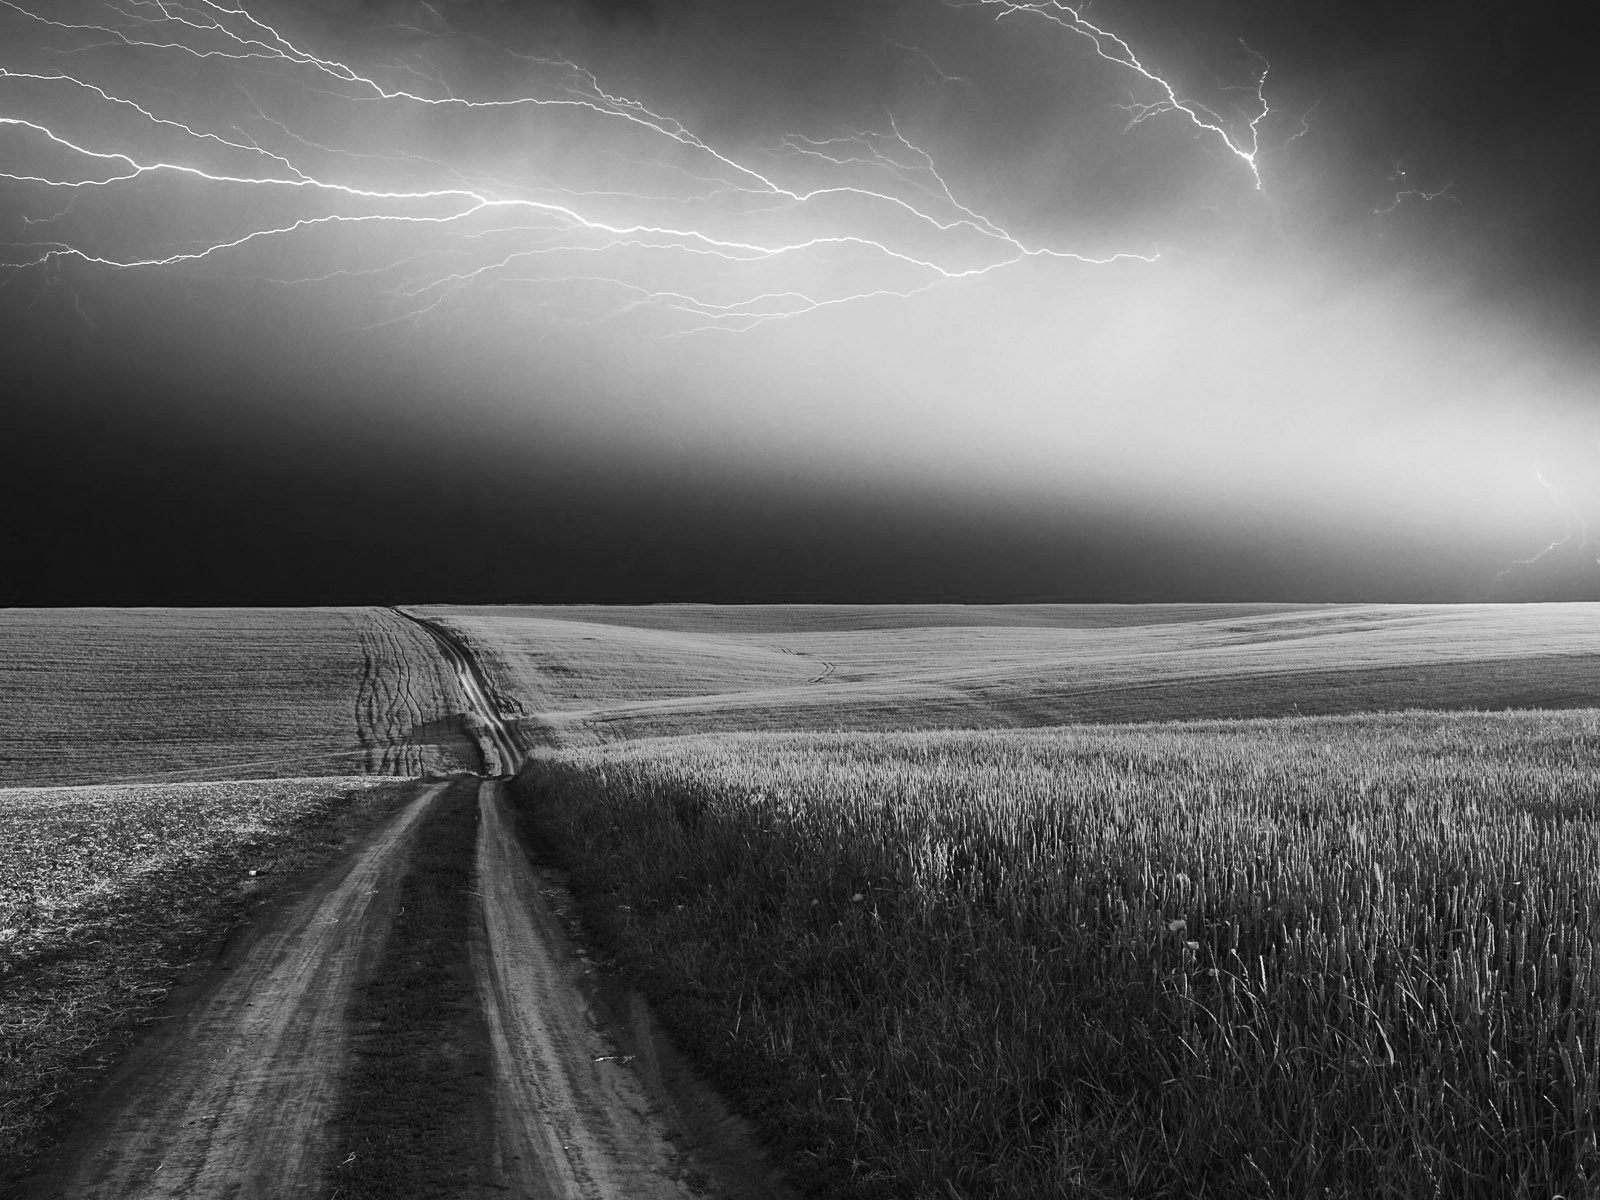 Nature-Lightning-Sky-Storm-Clouds-Thunderstorm-Rain-National-Geographic-Sky-Nature-Ligh-wallpaper-wpc5807545